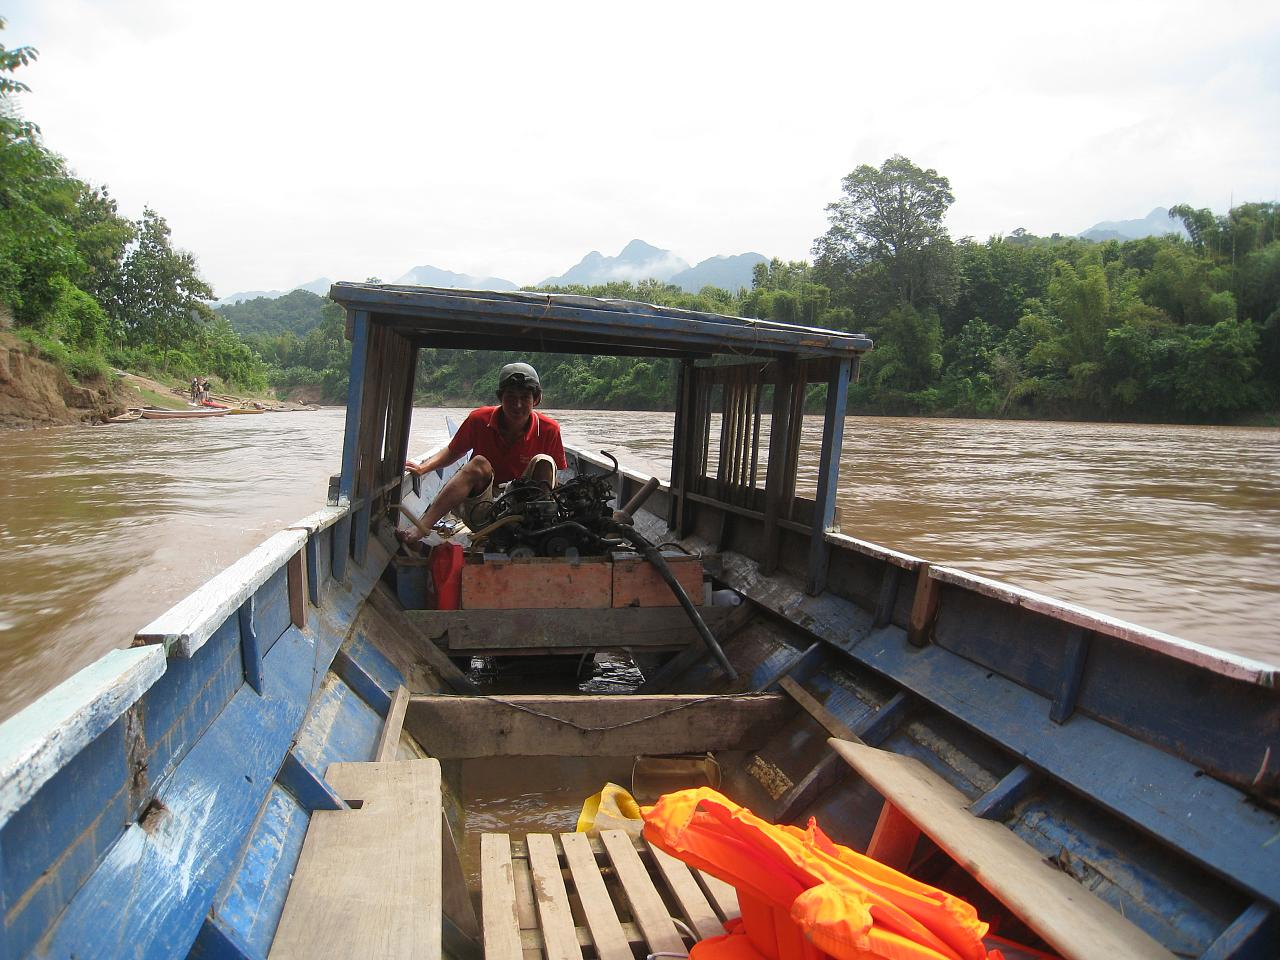 Leaving the bikes behind, we take a boat upriver